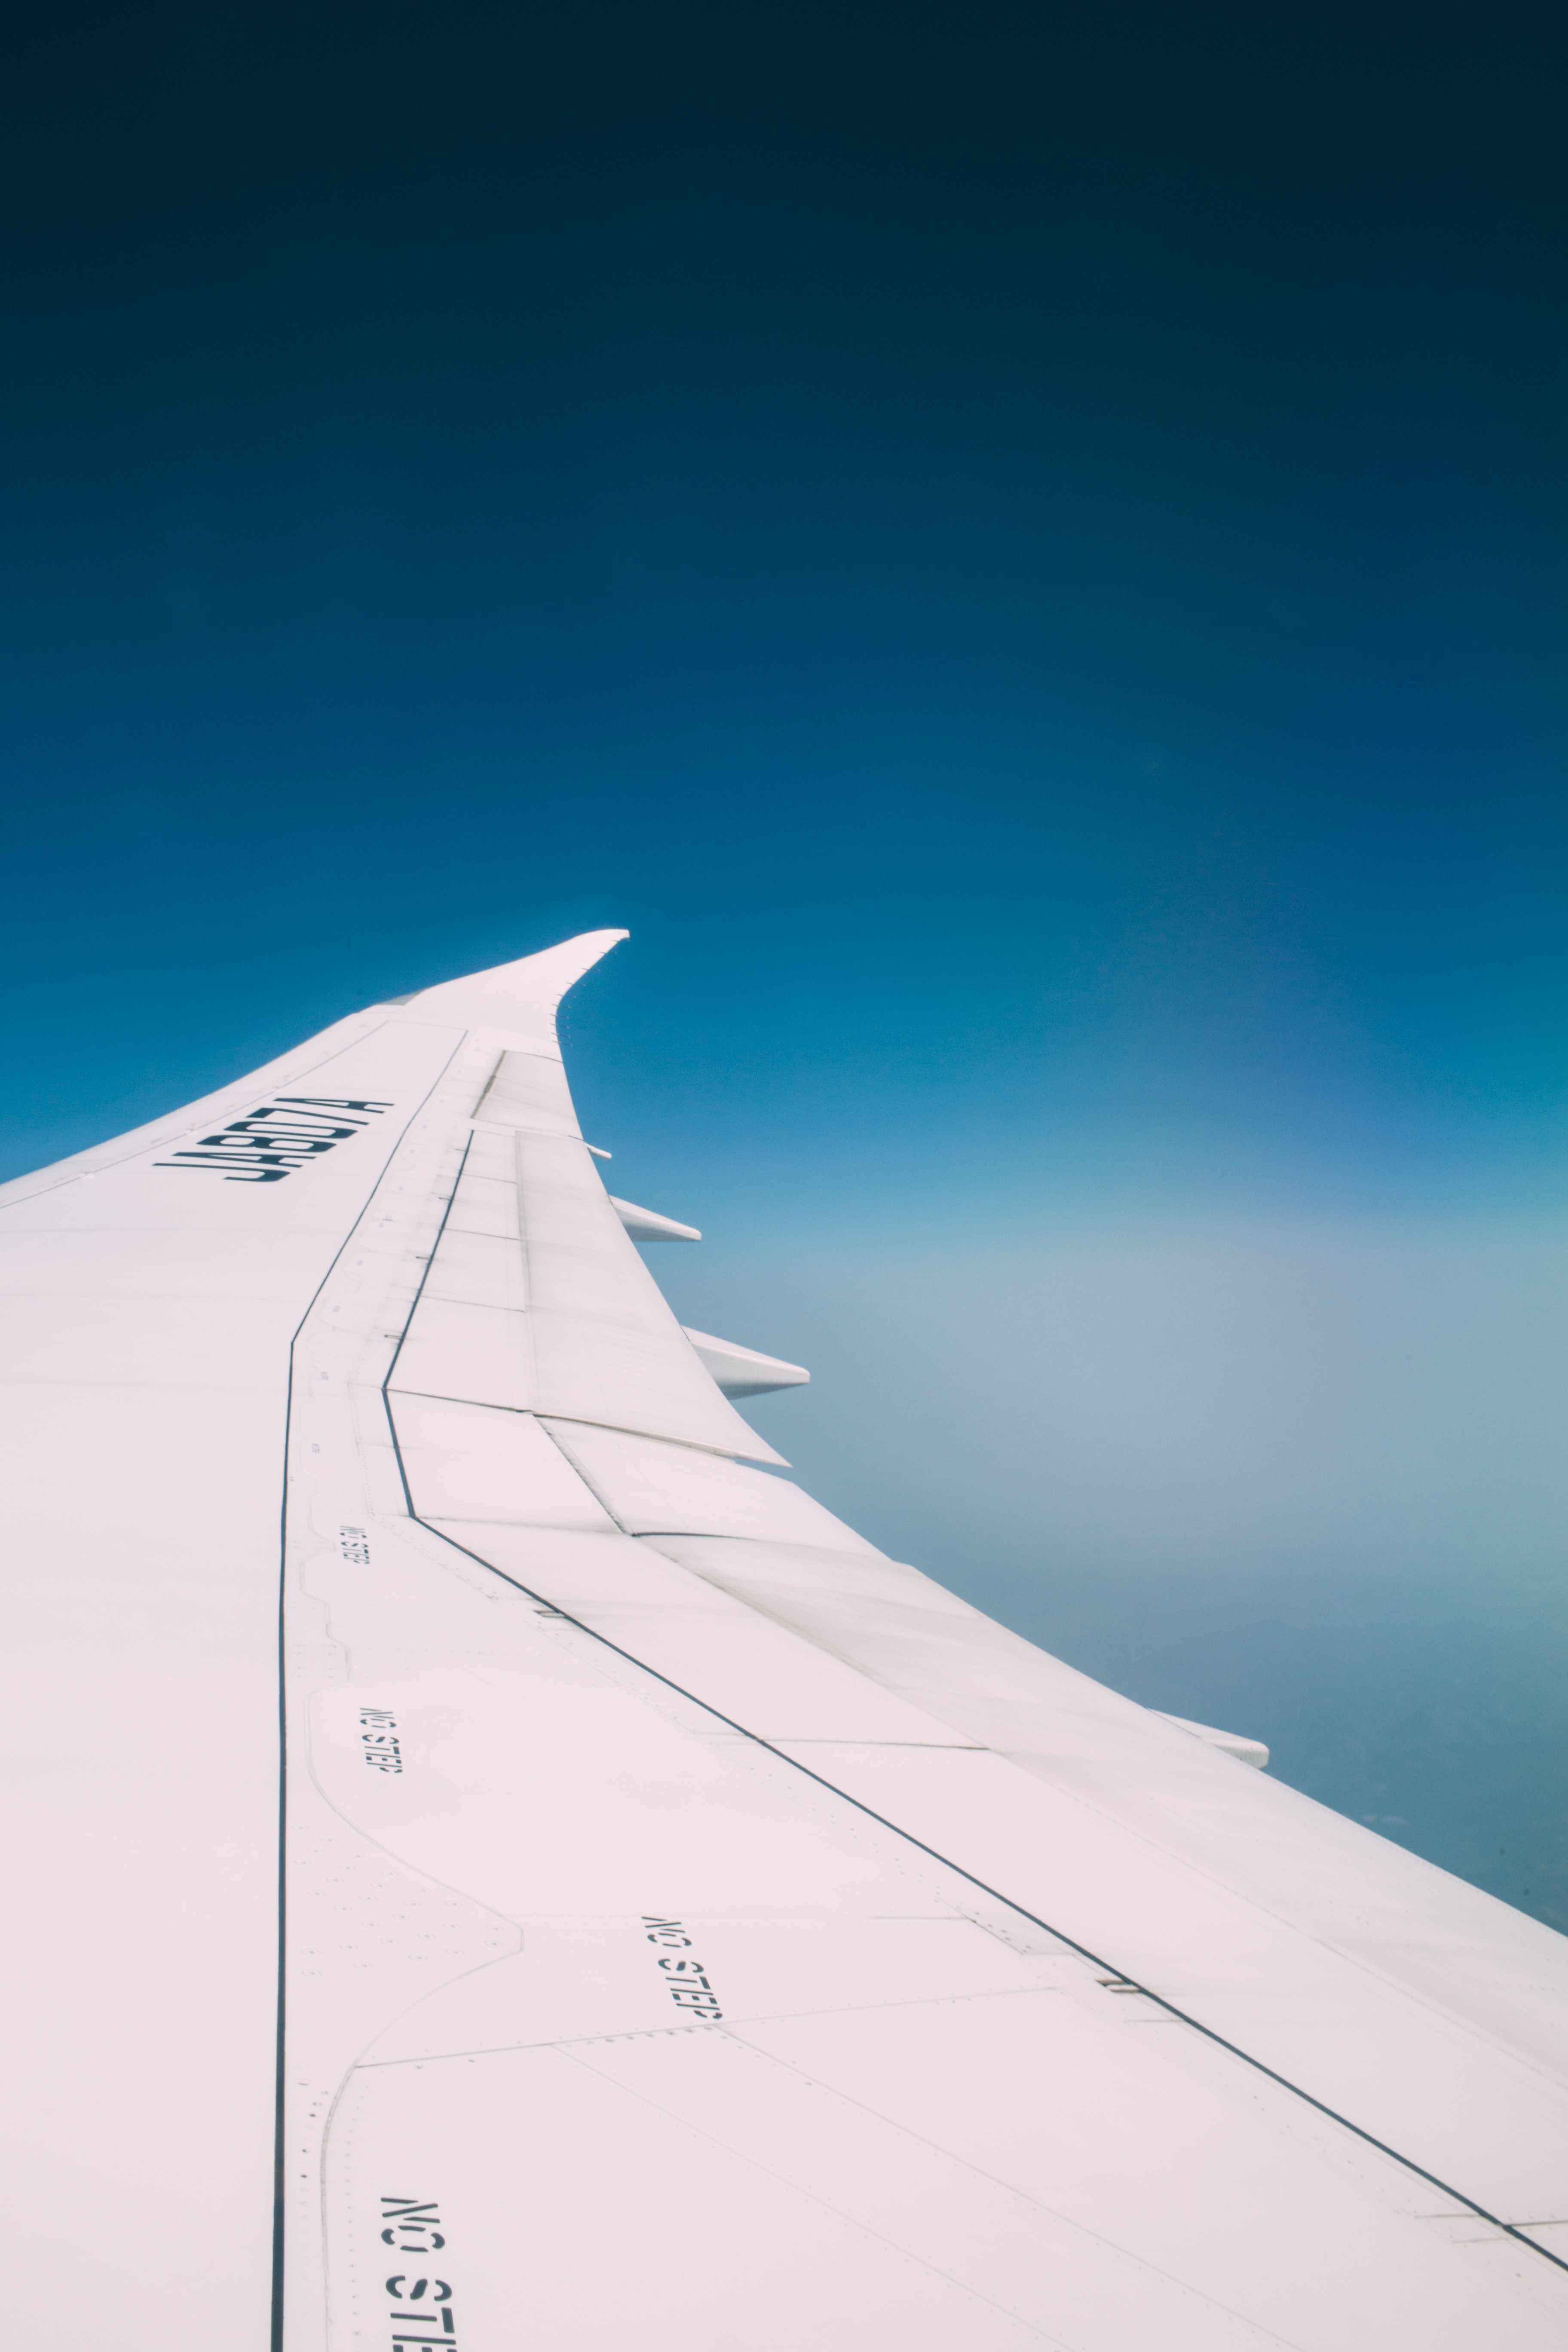 The wing of an airplane while in flight.